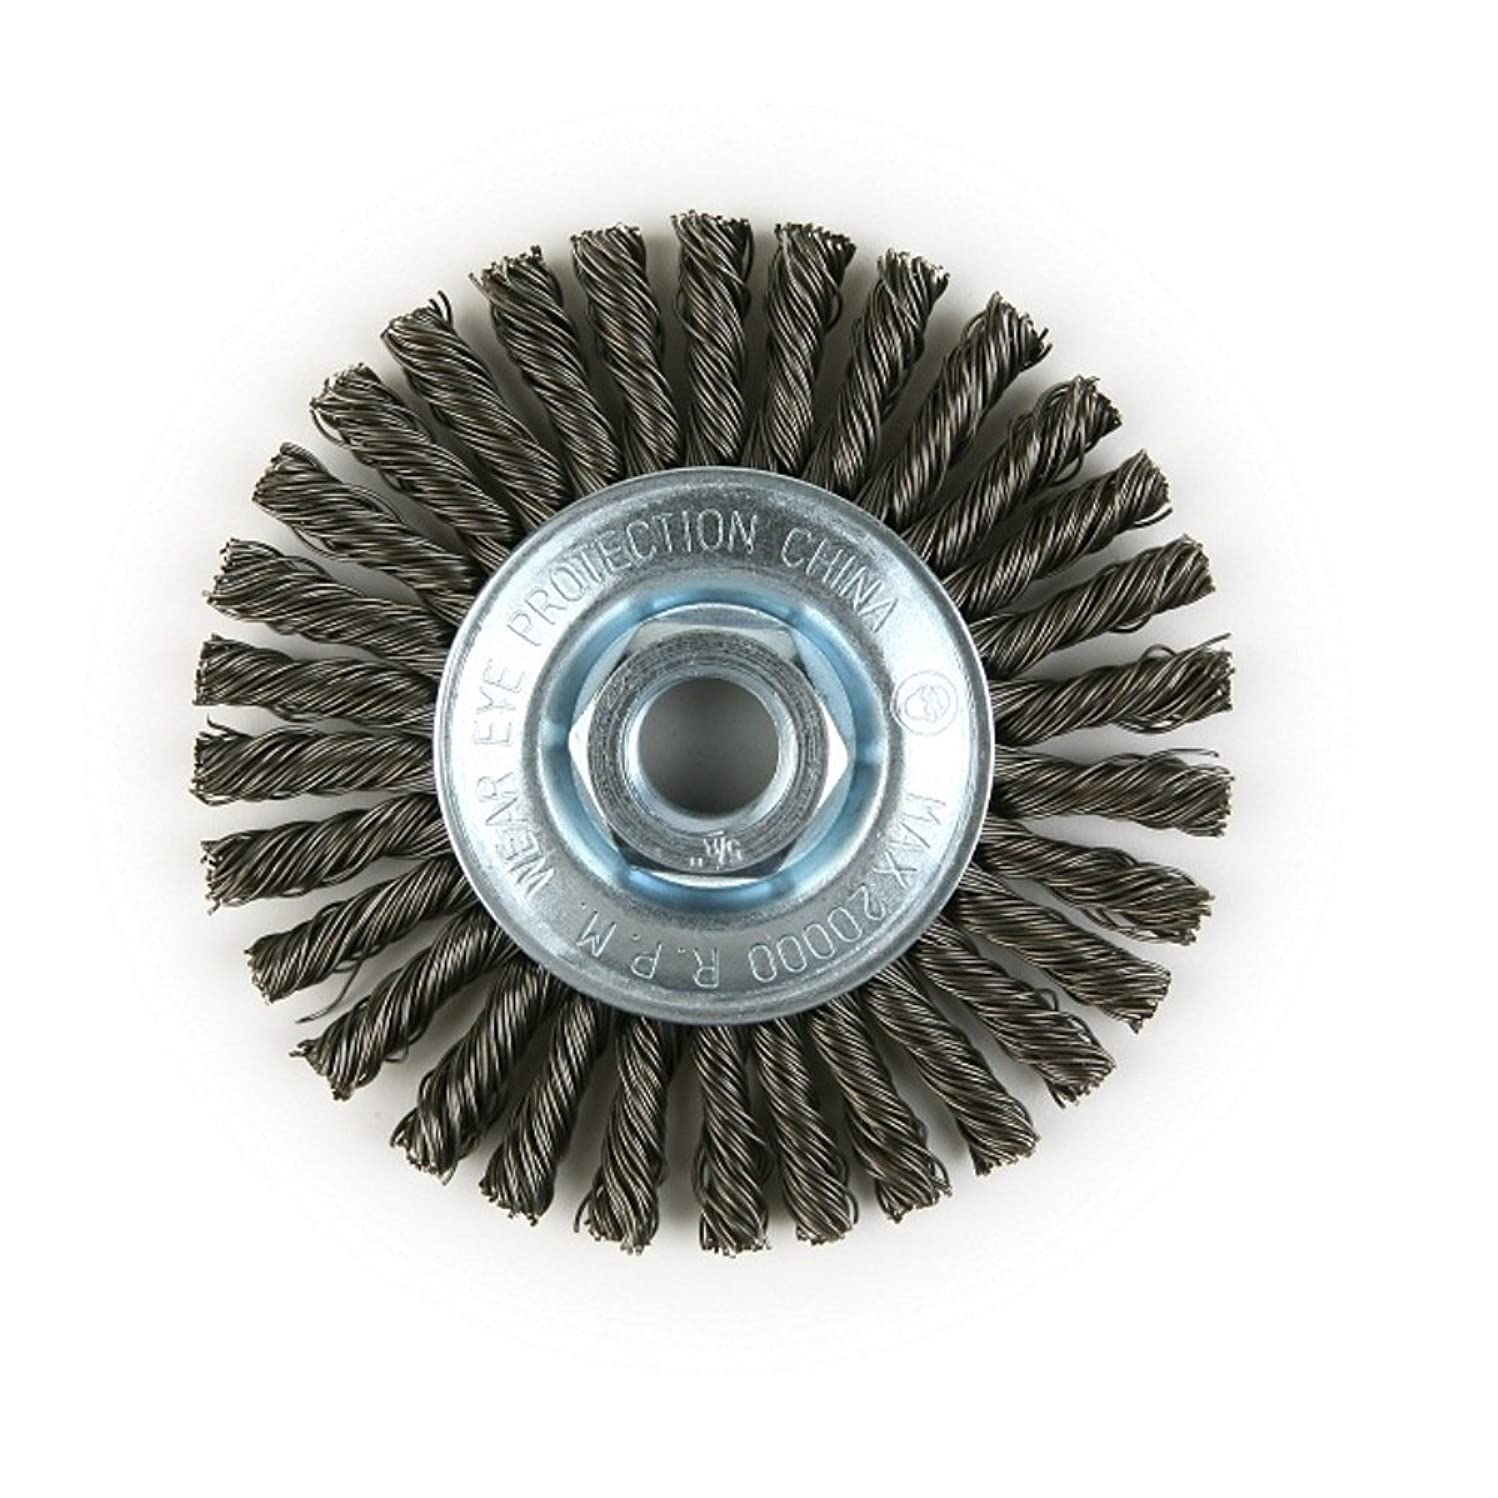 Lincoln Electric KH310 Twisted Stringer Bead Brush, 20000 rpm, 4